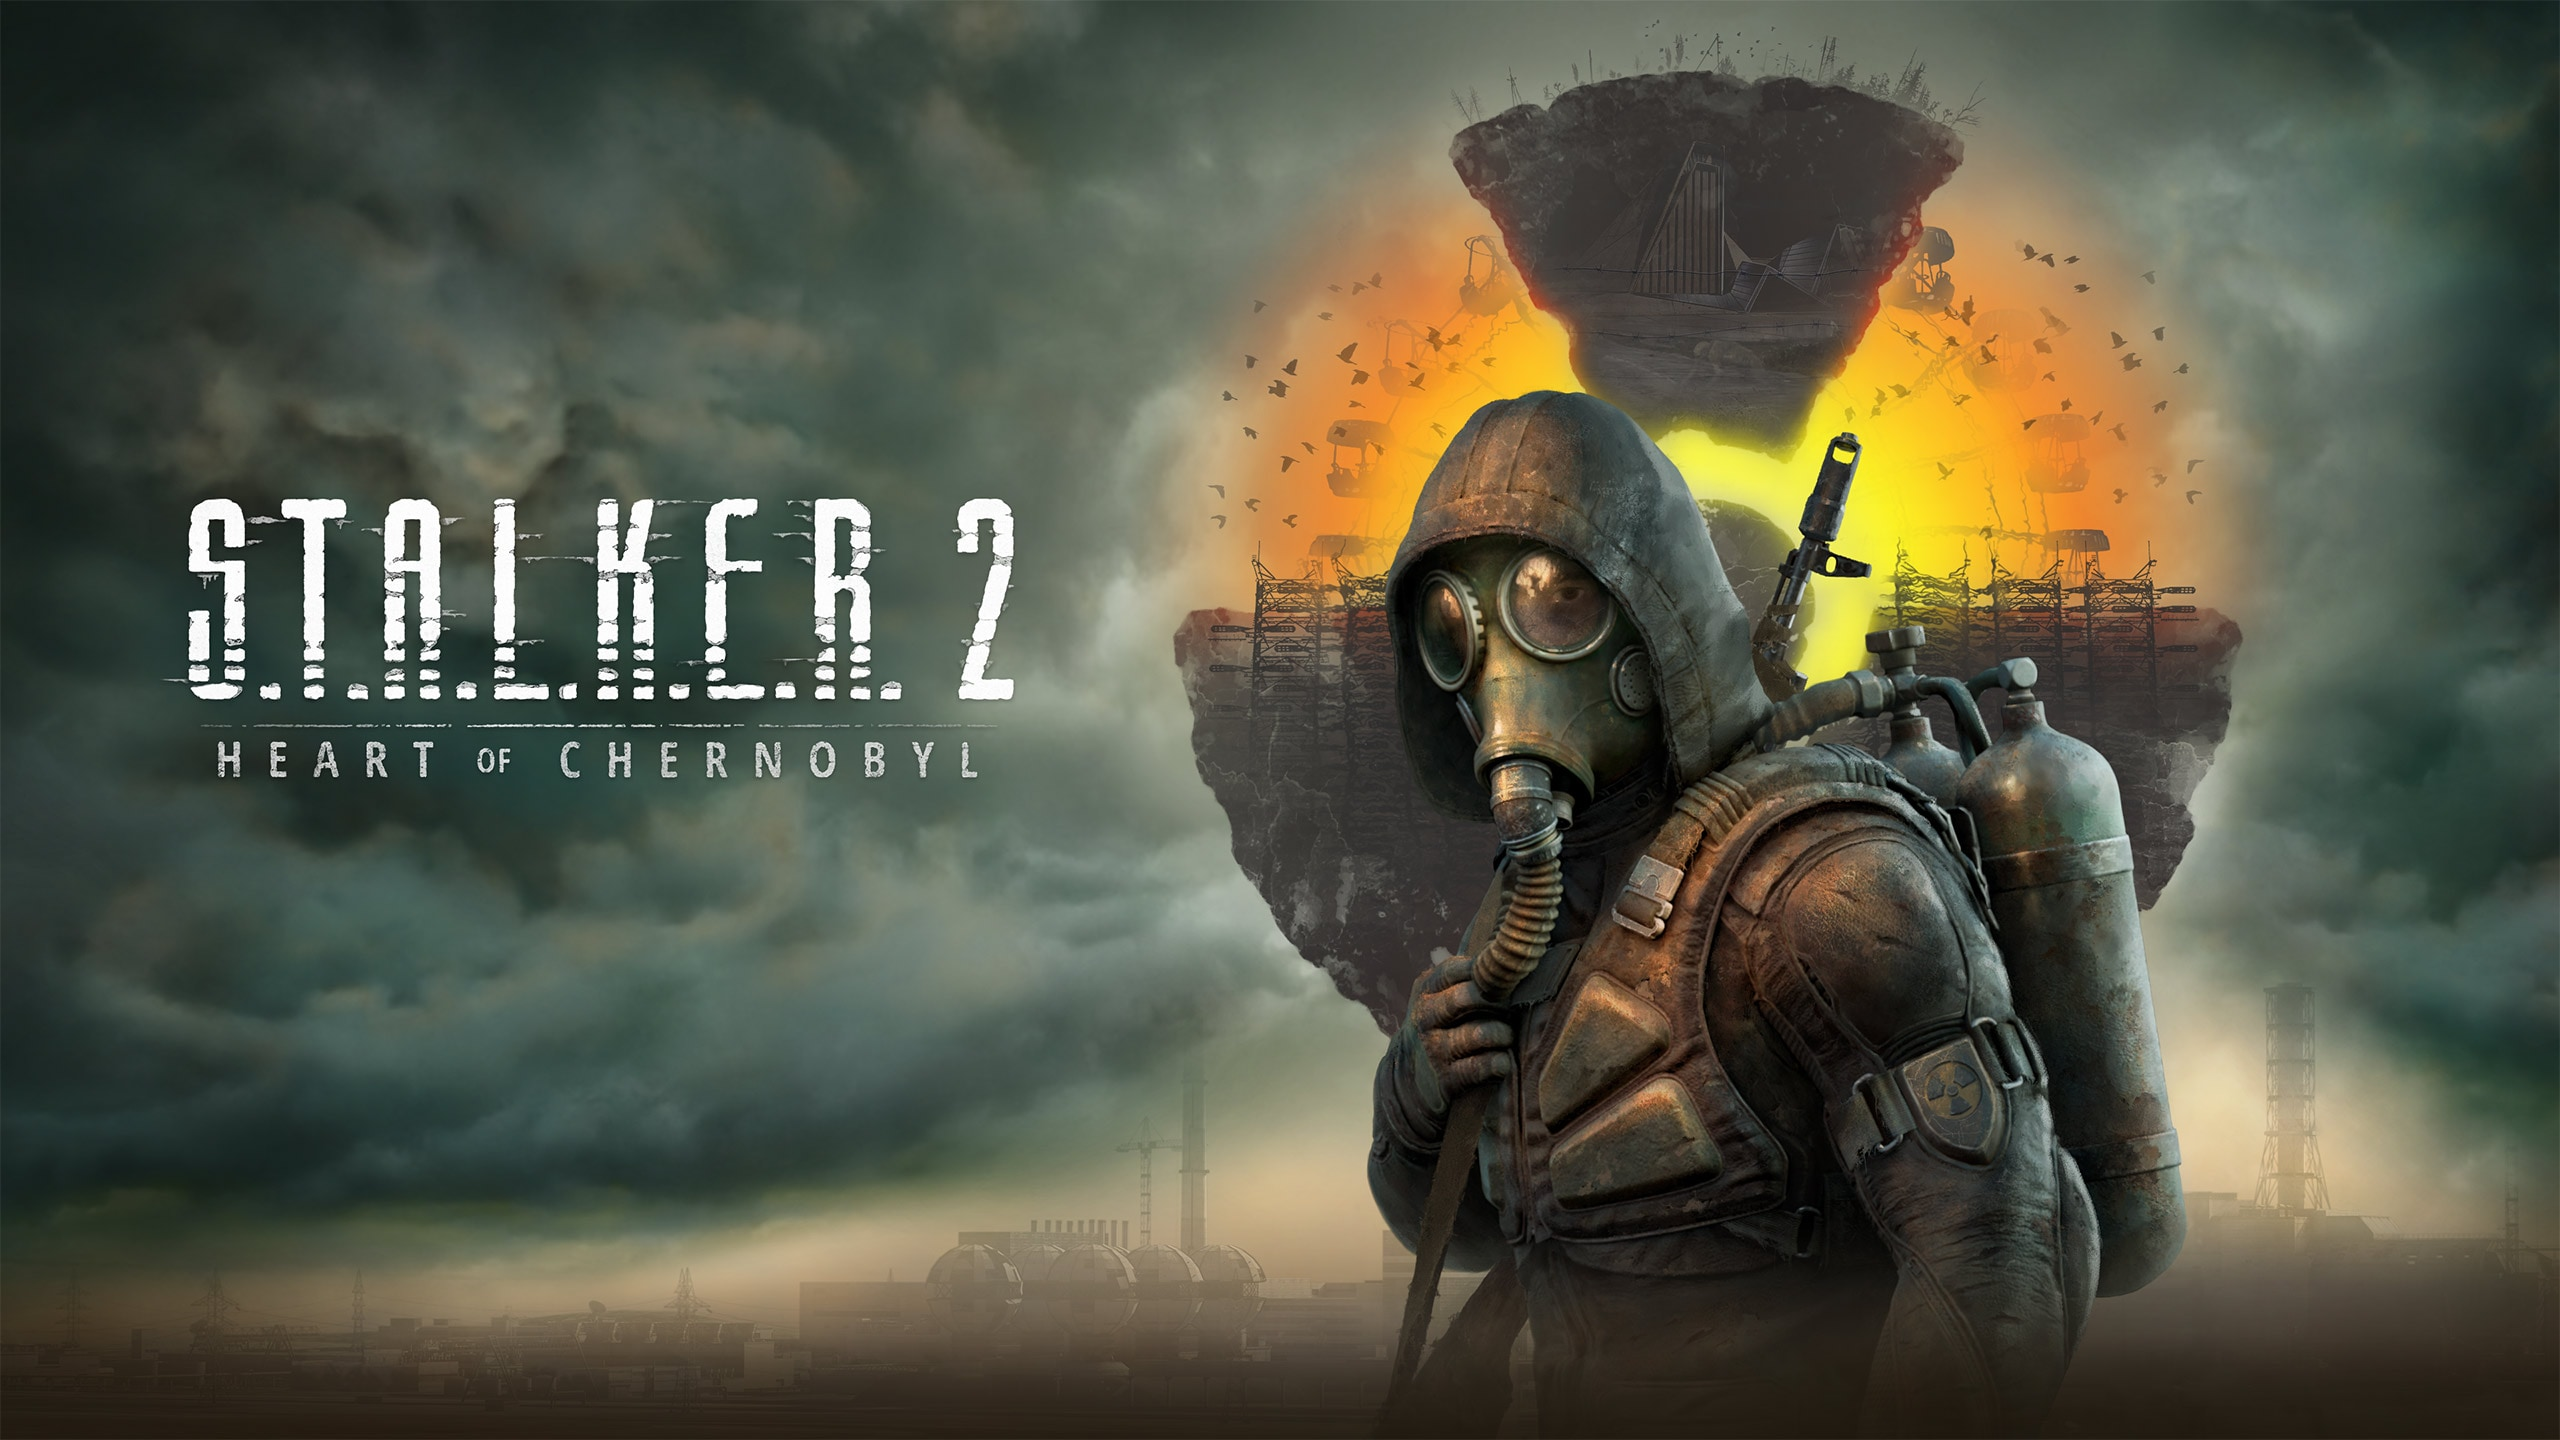 S.T.A.L.K.E.R. 2: Heart of Chernobyl | Ultimate Edition (PC) - Steam Gift - EUROPE - 1